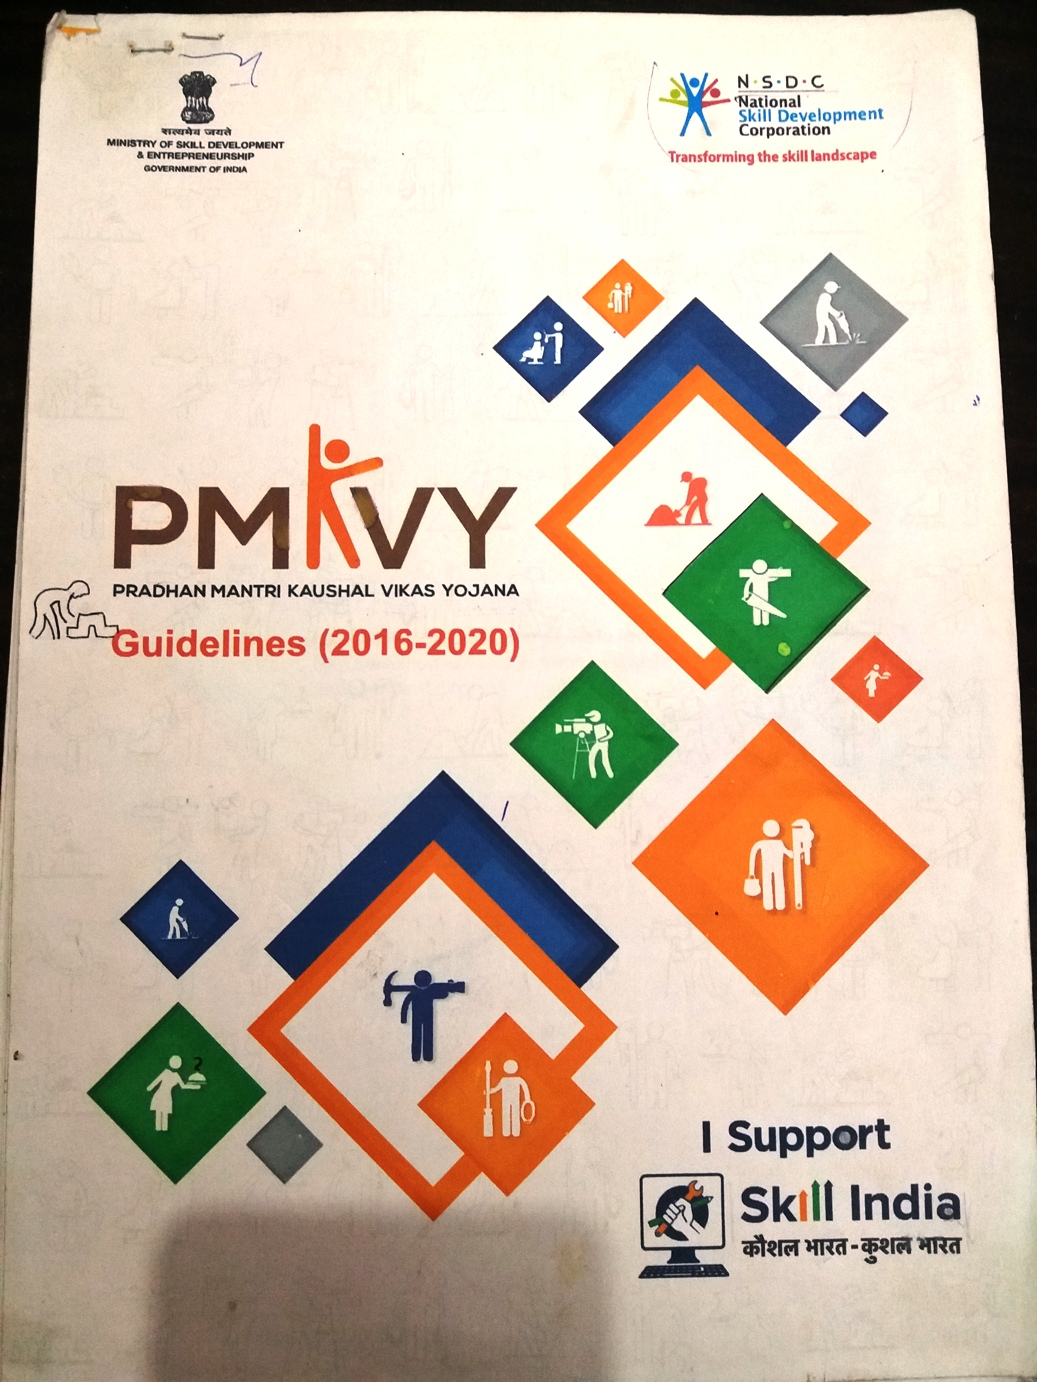 Sona Yukti PMKVY Counselling Materials to its Trainees